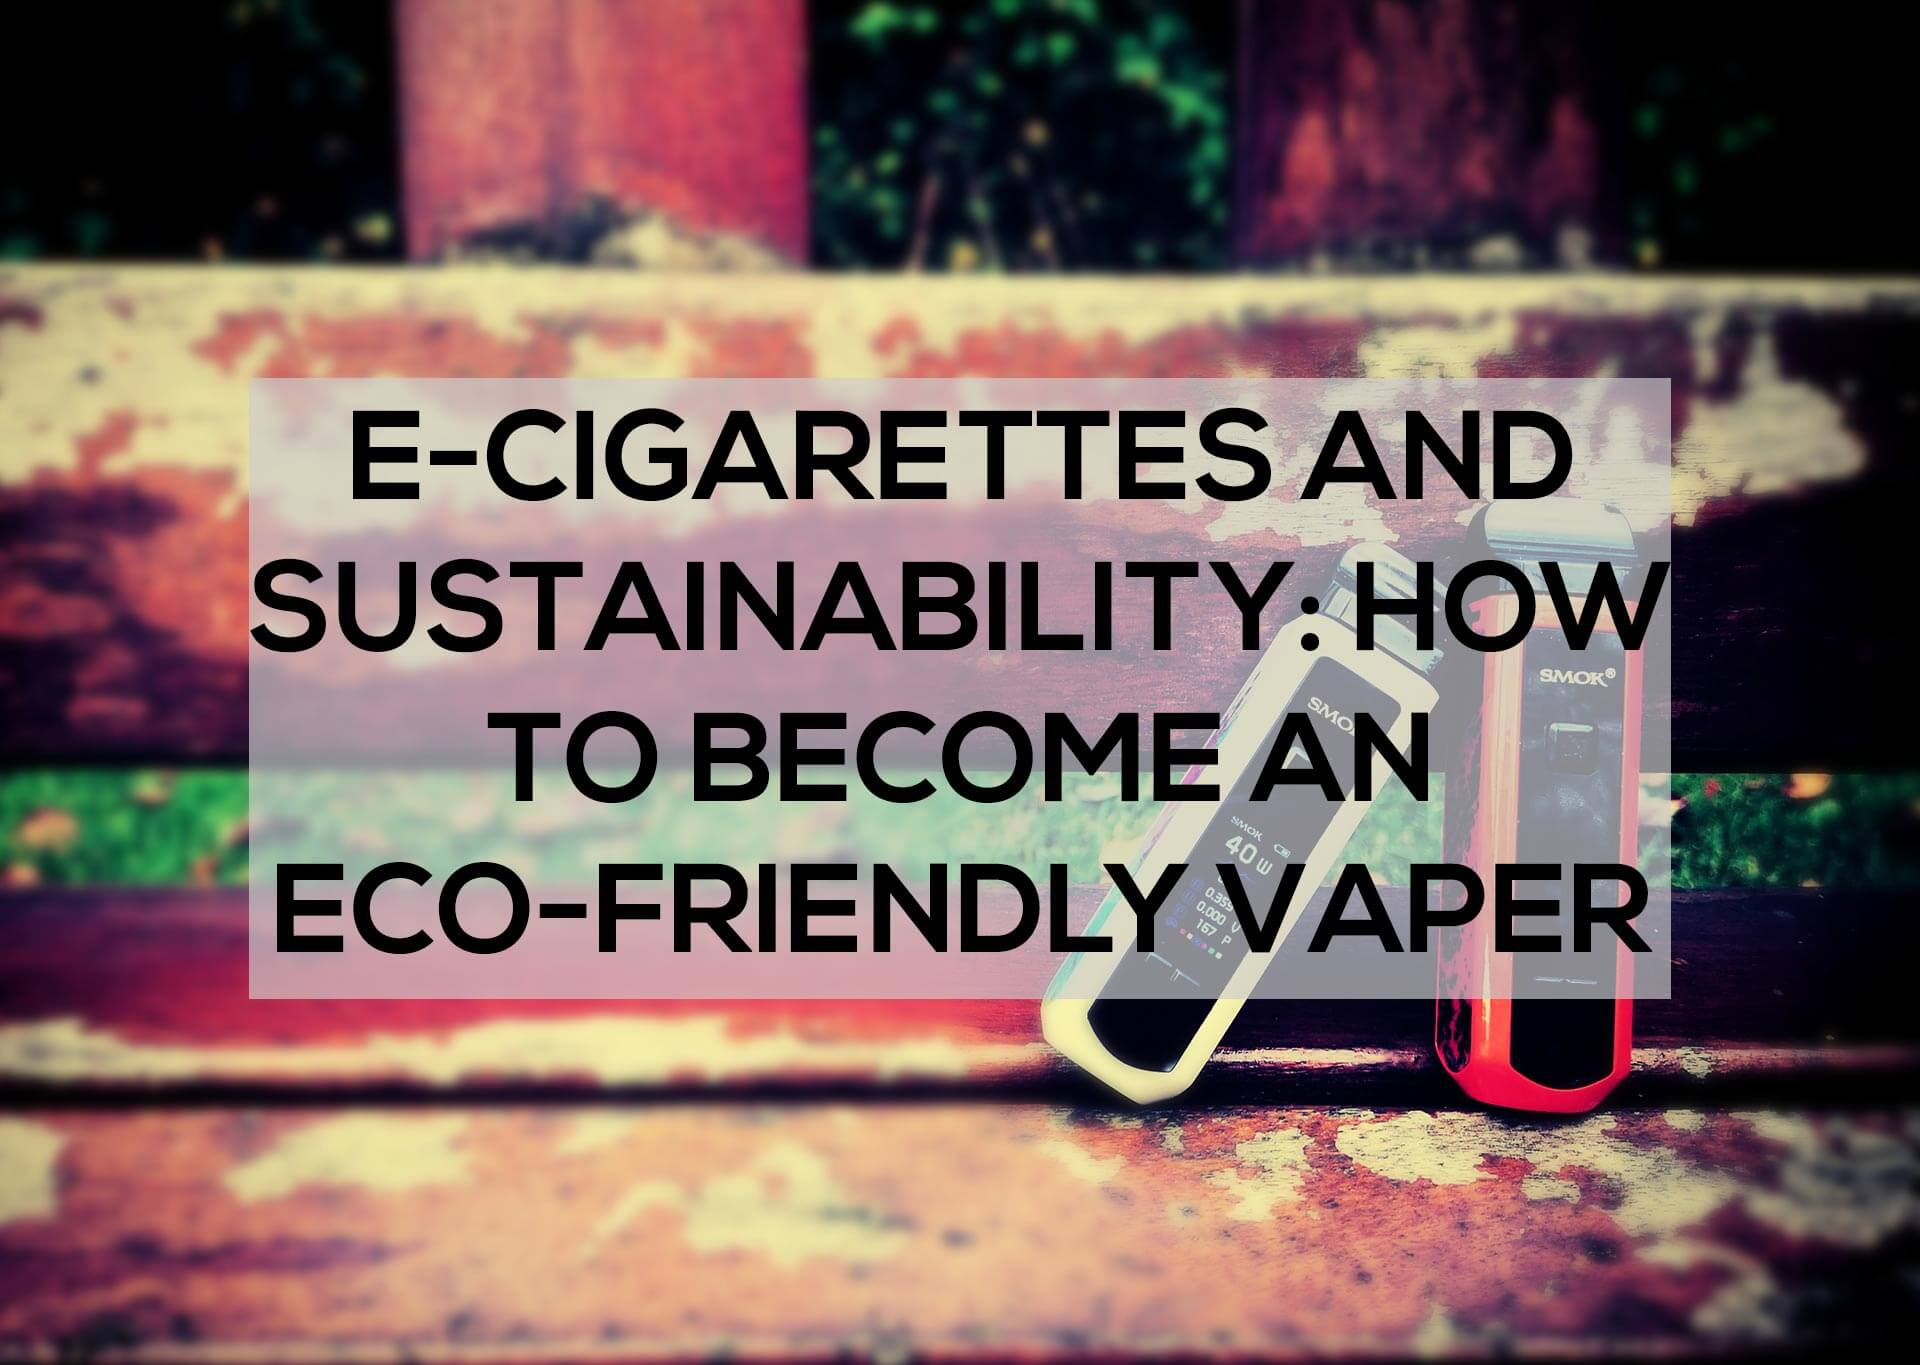 E-Cigarettes-and-Sustainability--How-to-Become-an-Eco-Friendly-Vaper